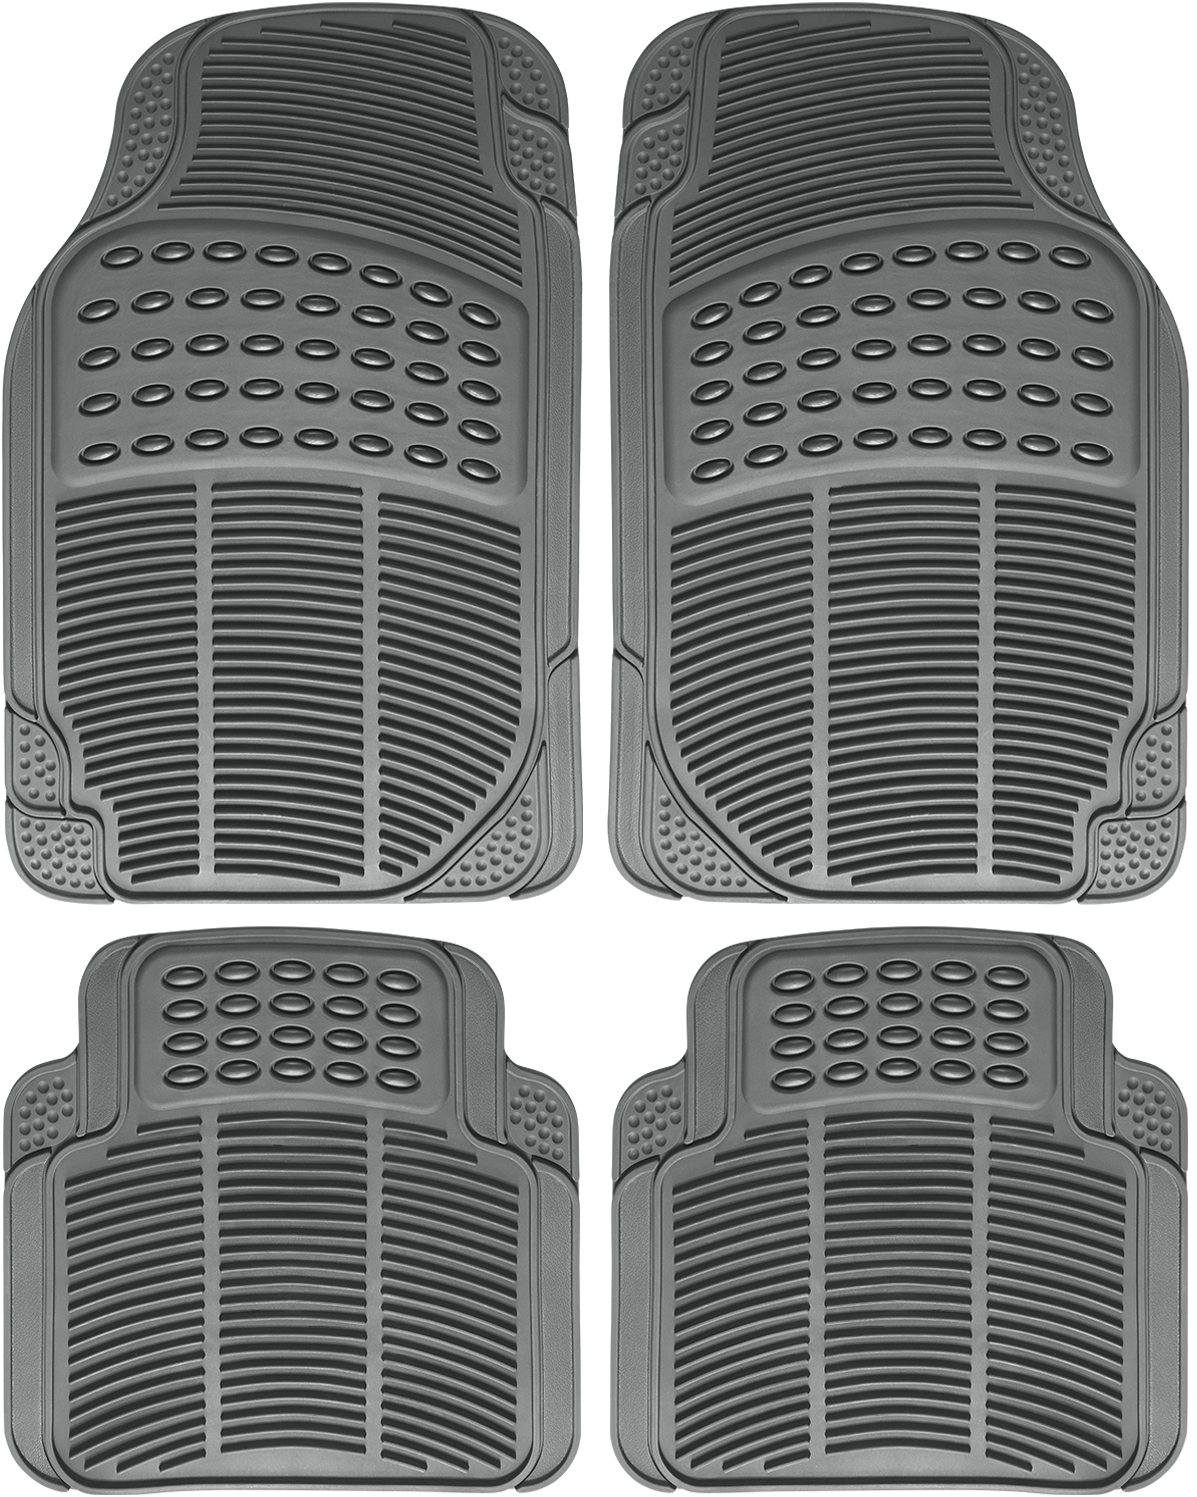 Car Floor Mats For Auto All Weather Rubber 4pc Set Semi